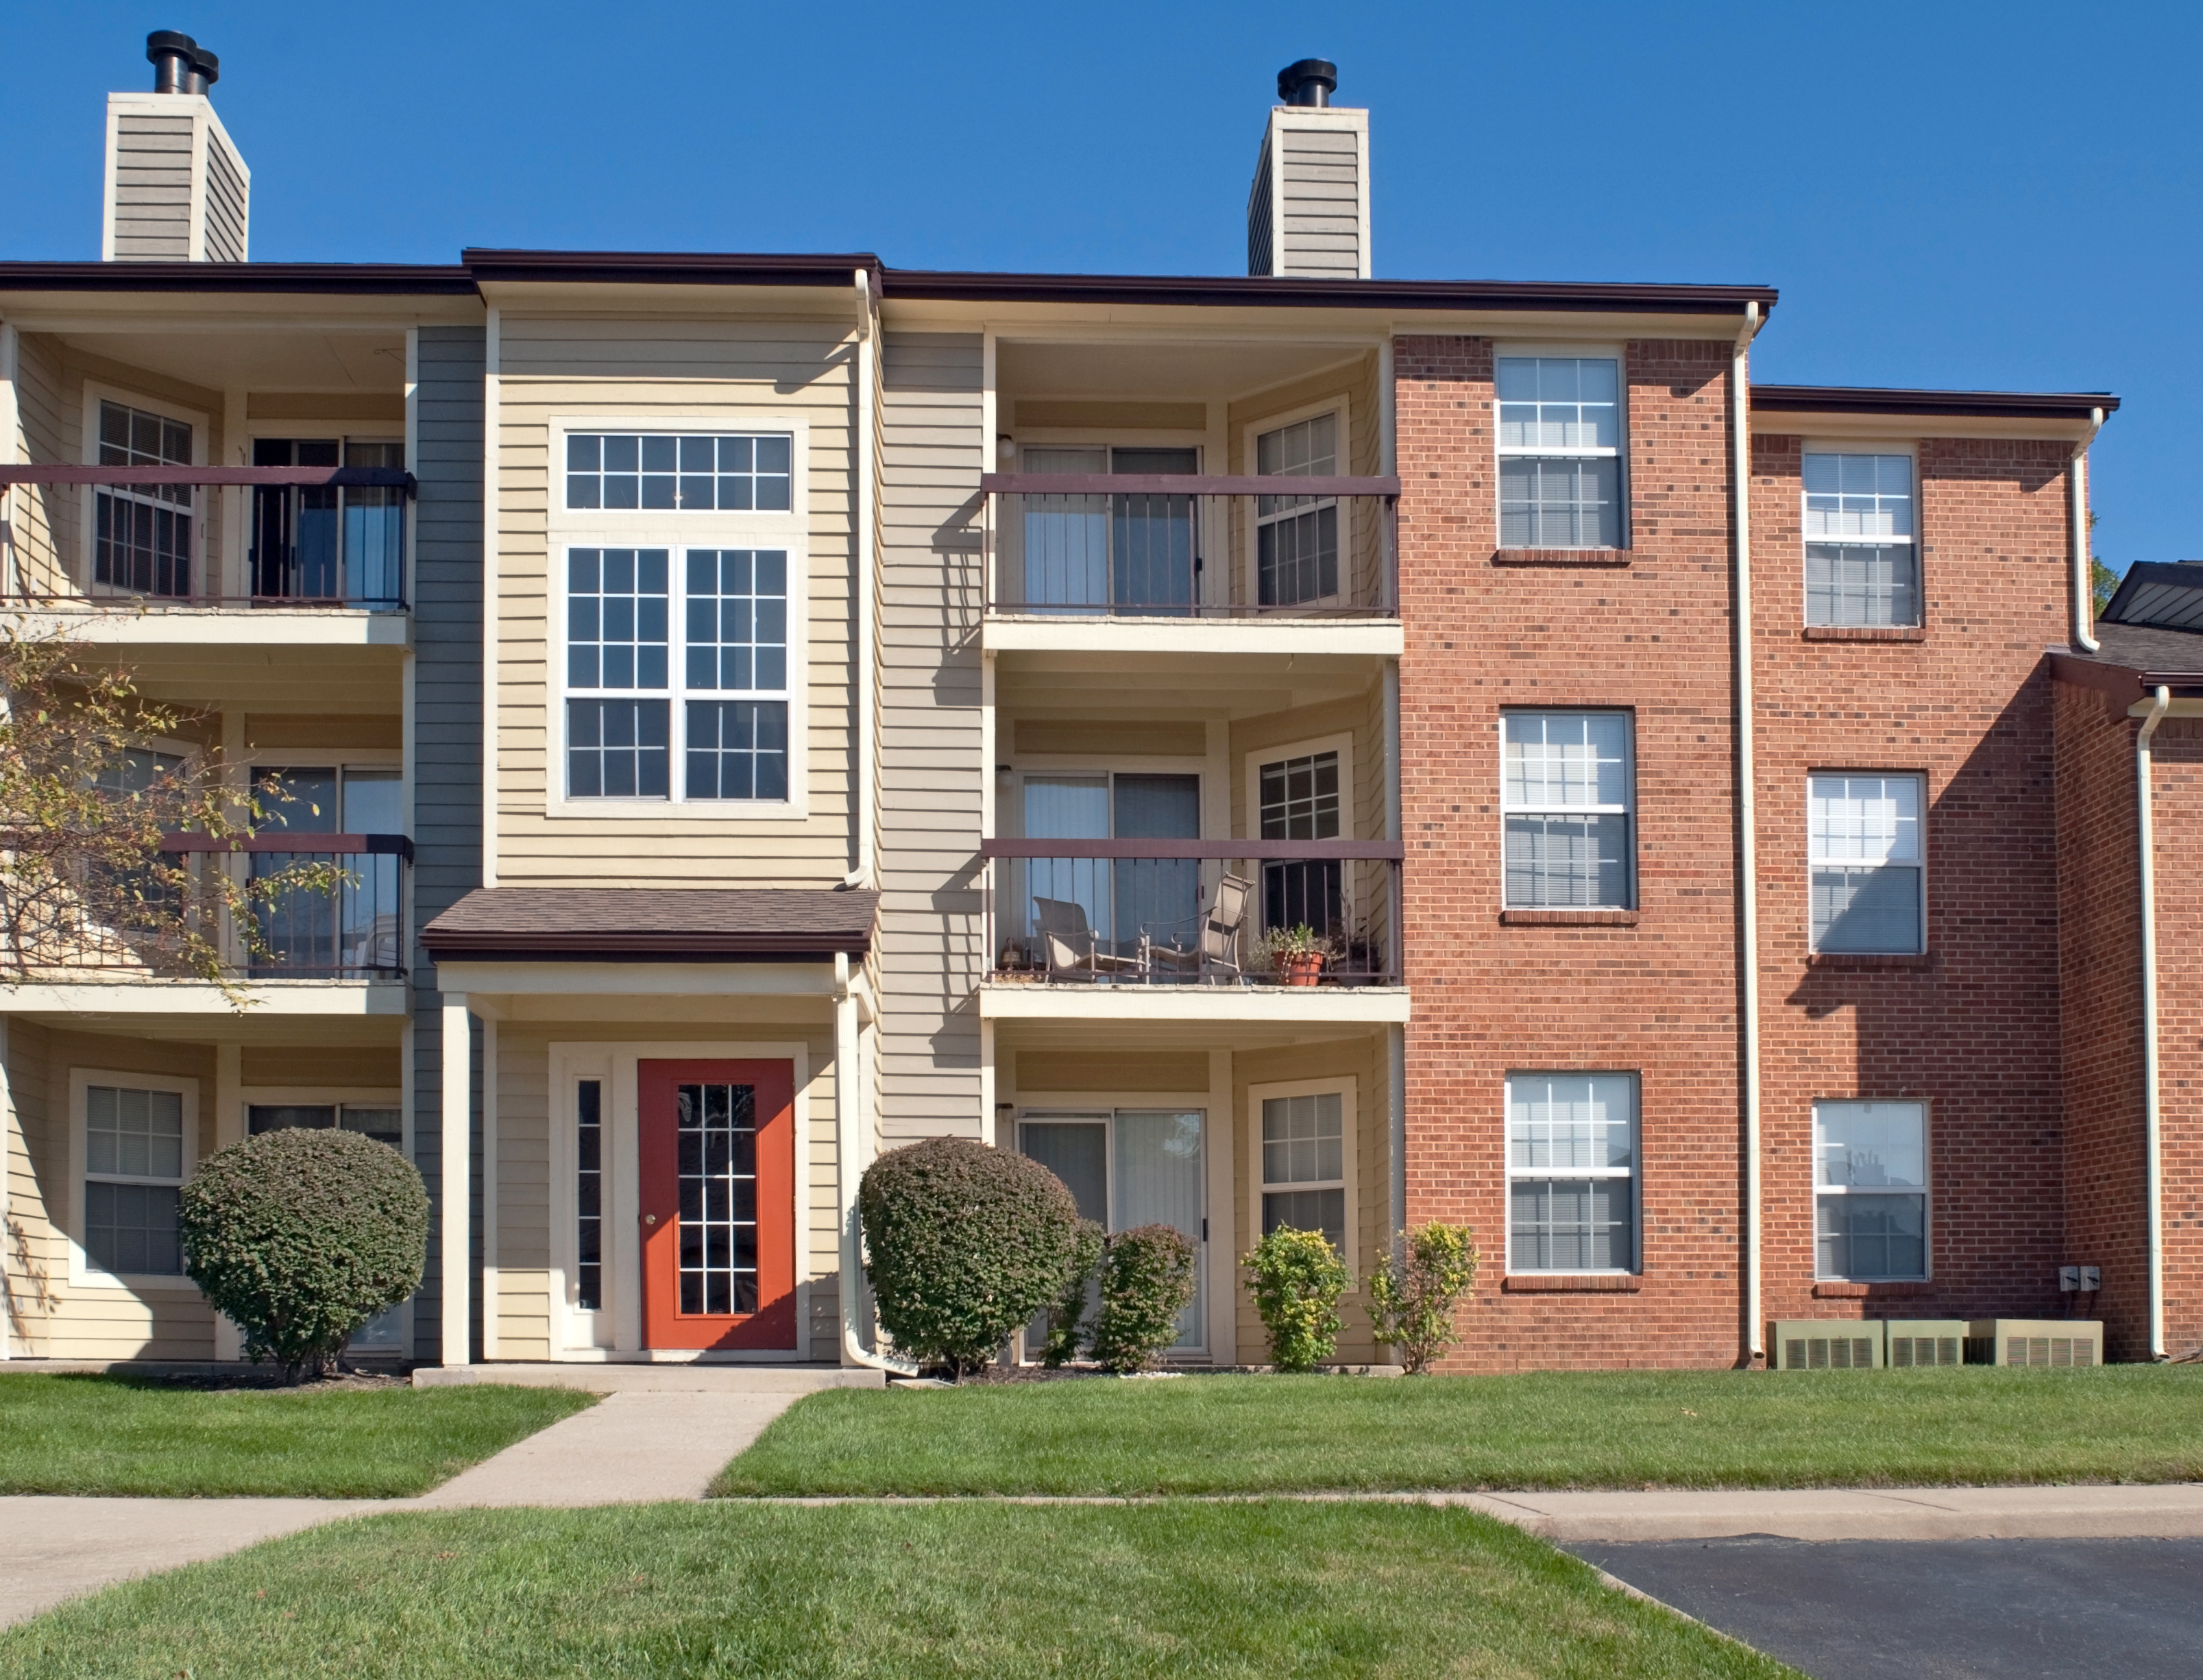 Commercial Apartment painting by CertaPro house painters in Chagrin Falls, OH